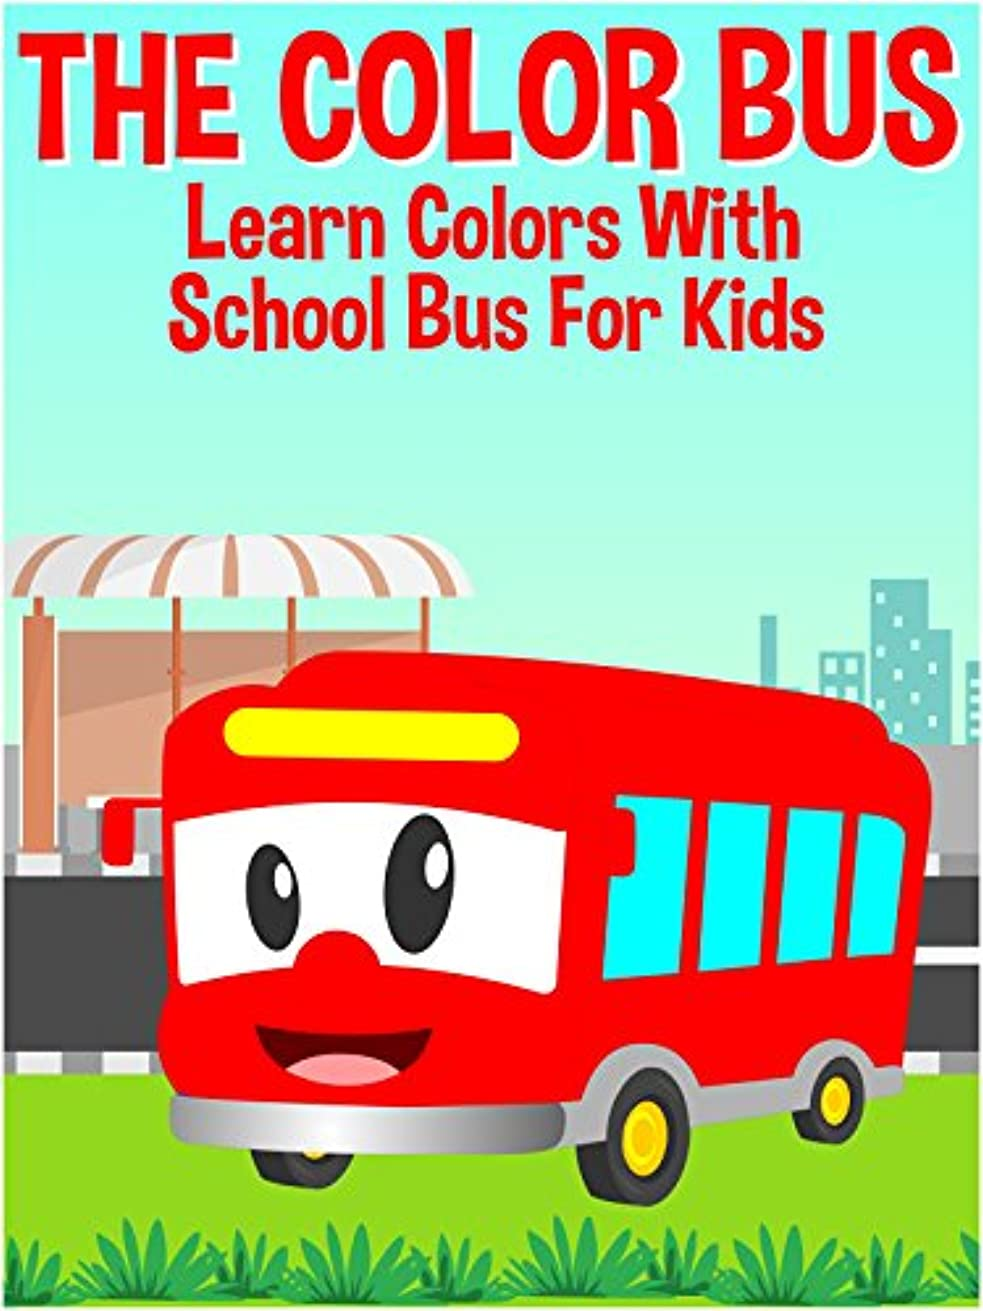 The Color Bus - Learn Colors With School Bus For Kids